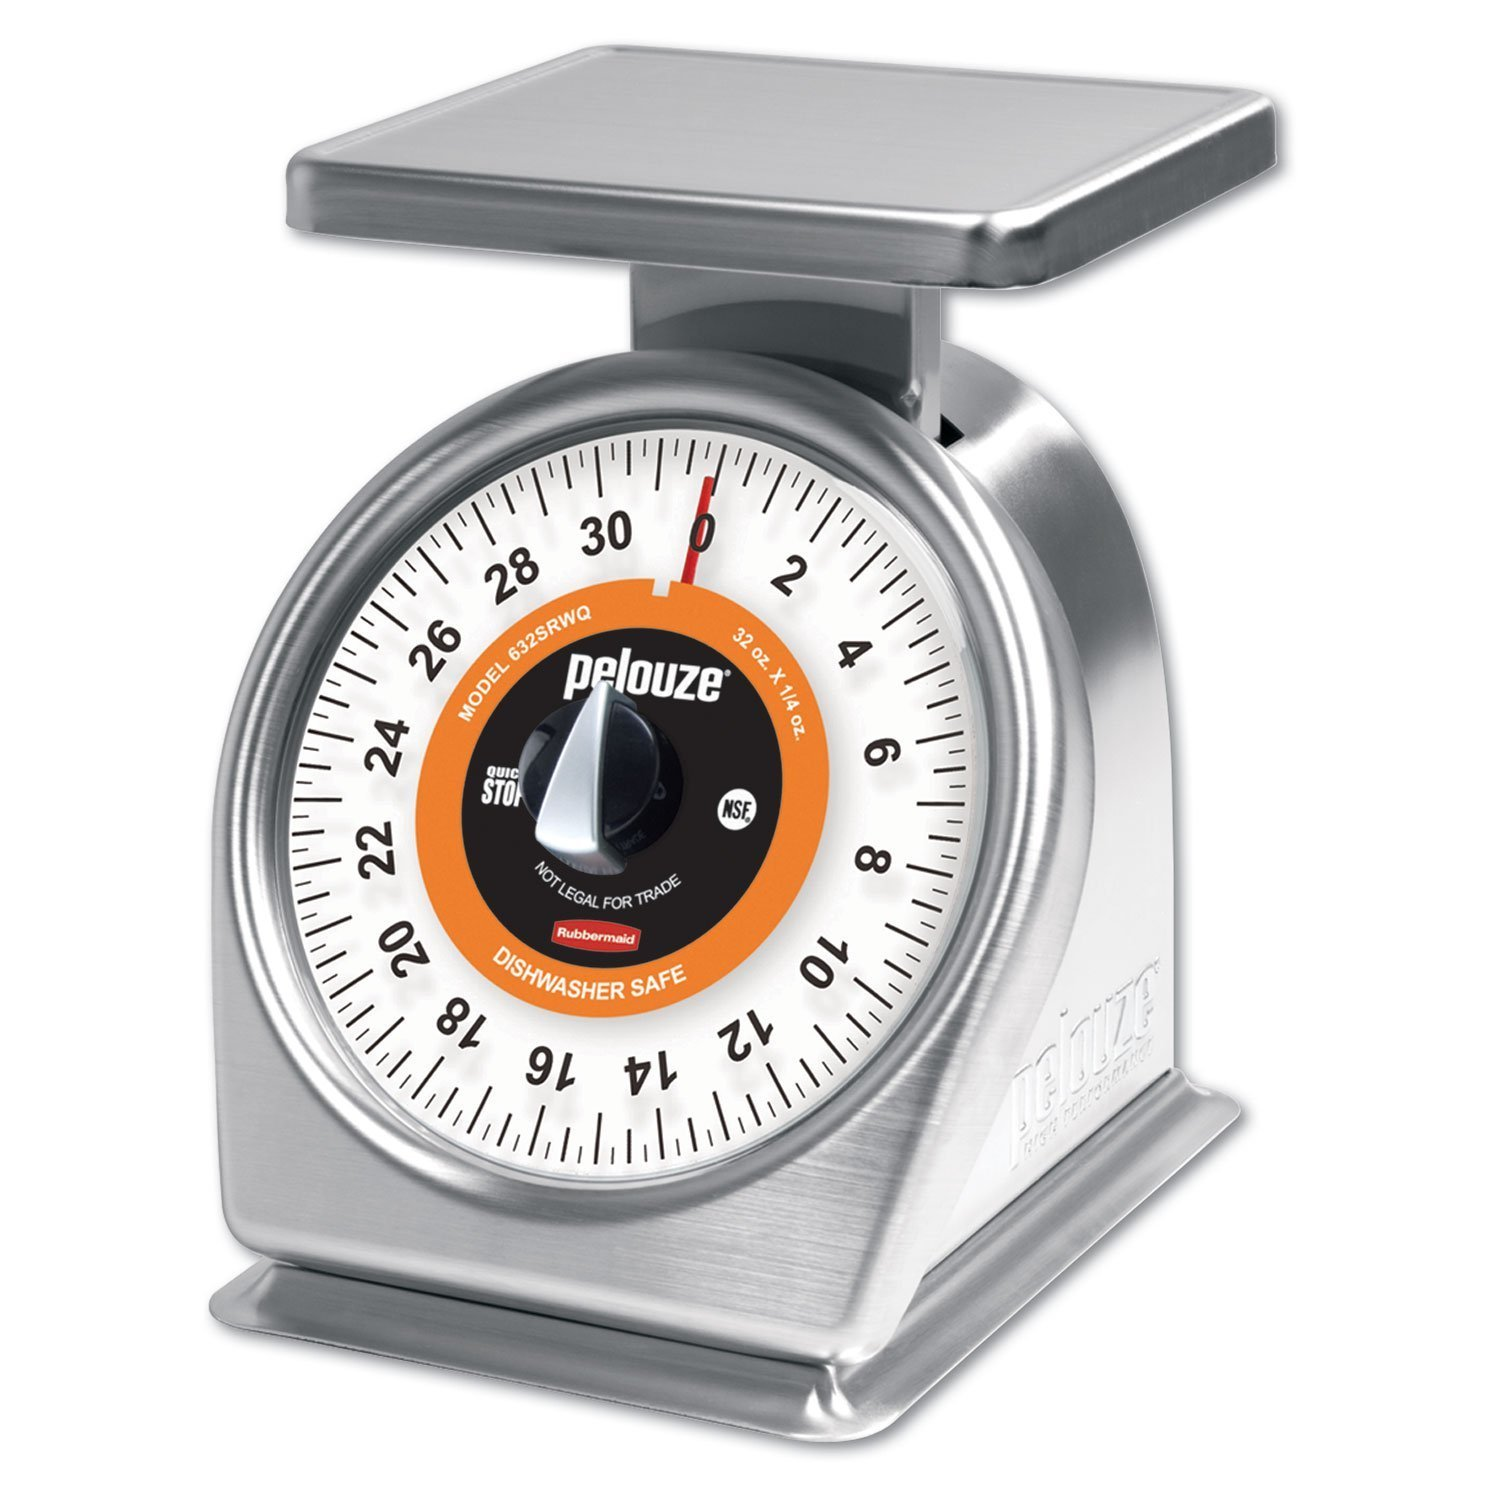 Rubbermaid Commercial Products FG632SRWQ Stainless Steel Food Service Mechanical Portion Control Scale with Quick-Stop, 2 lb. 171797